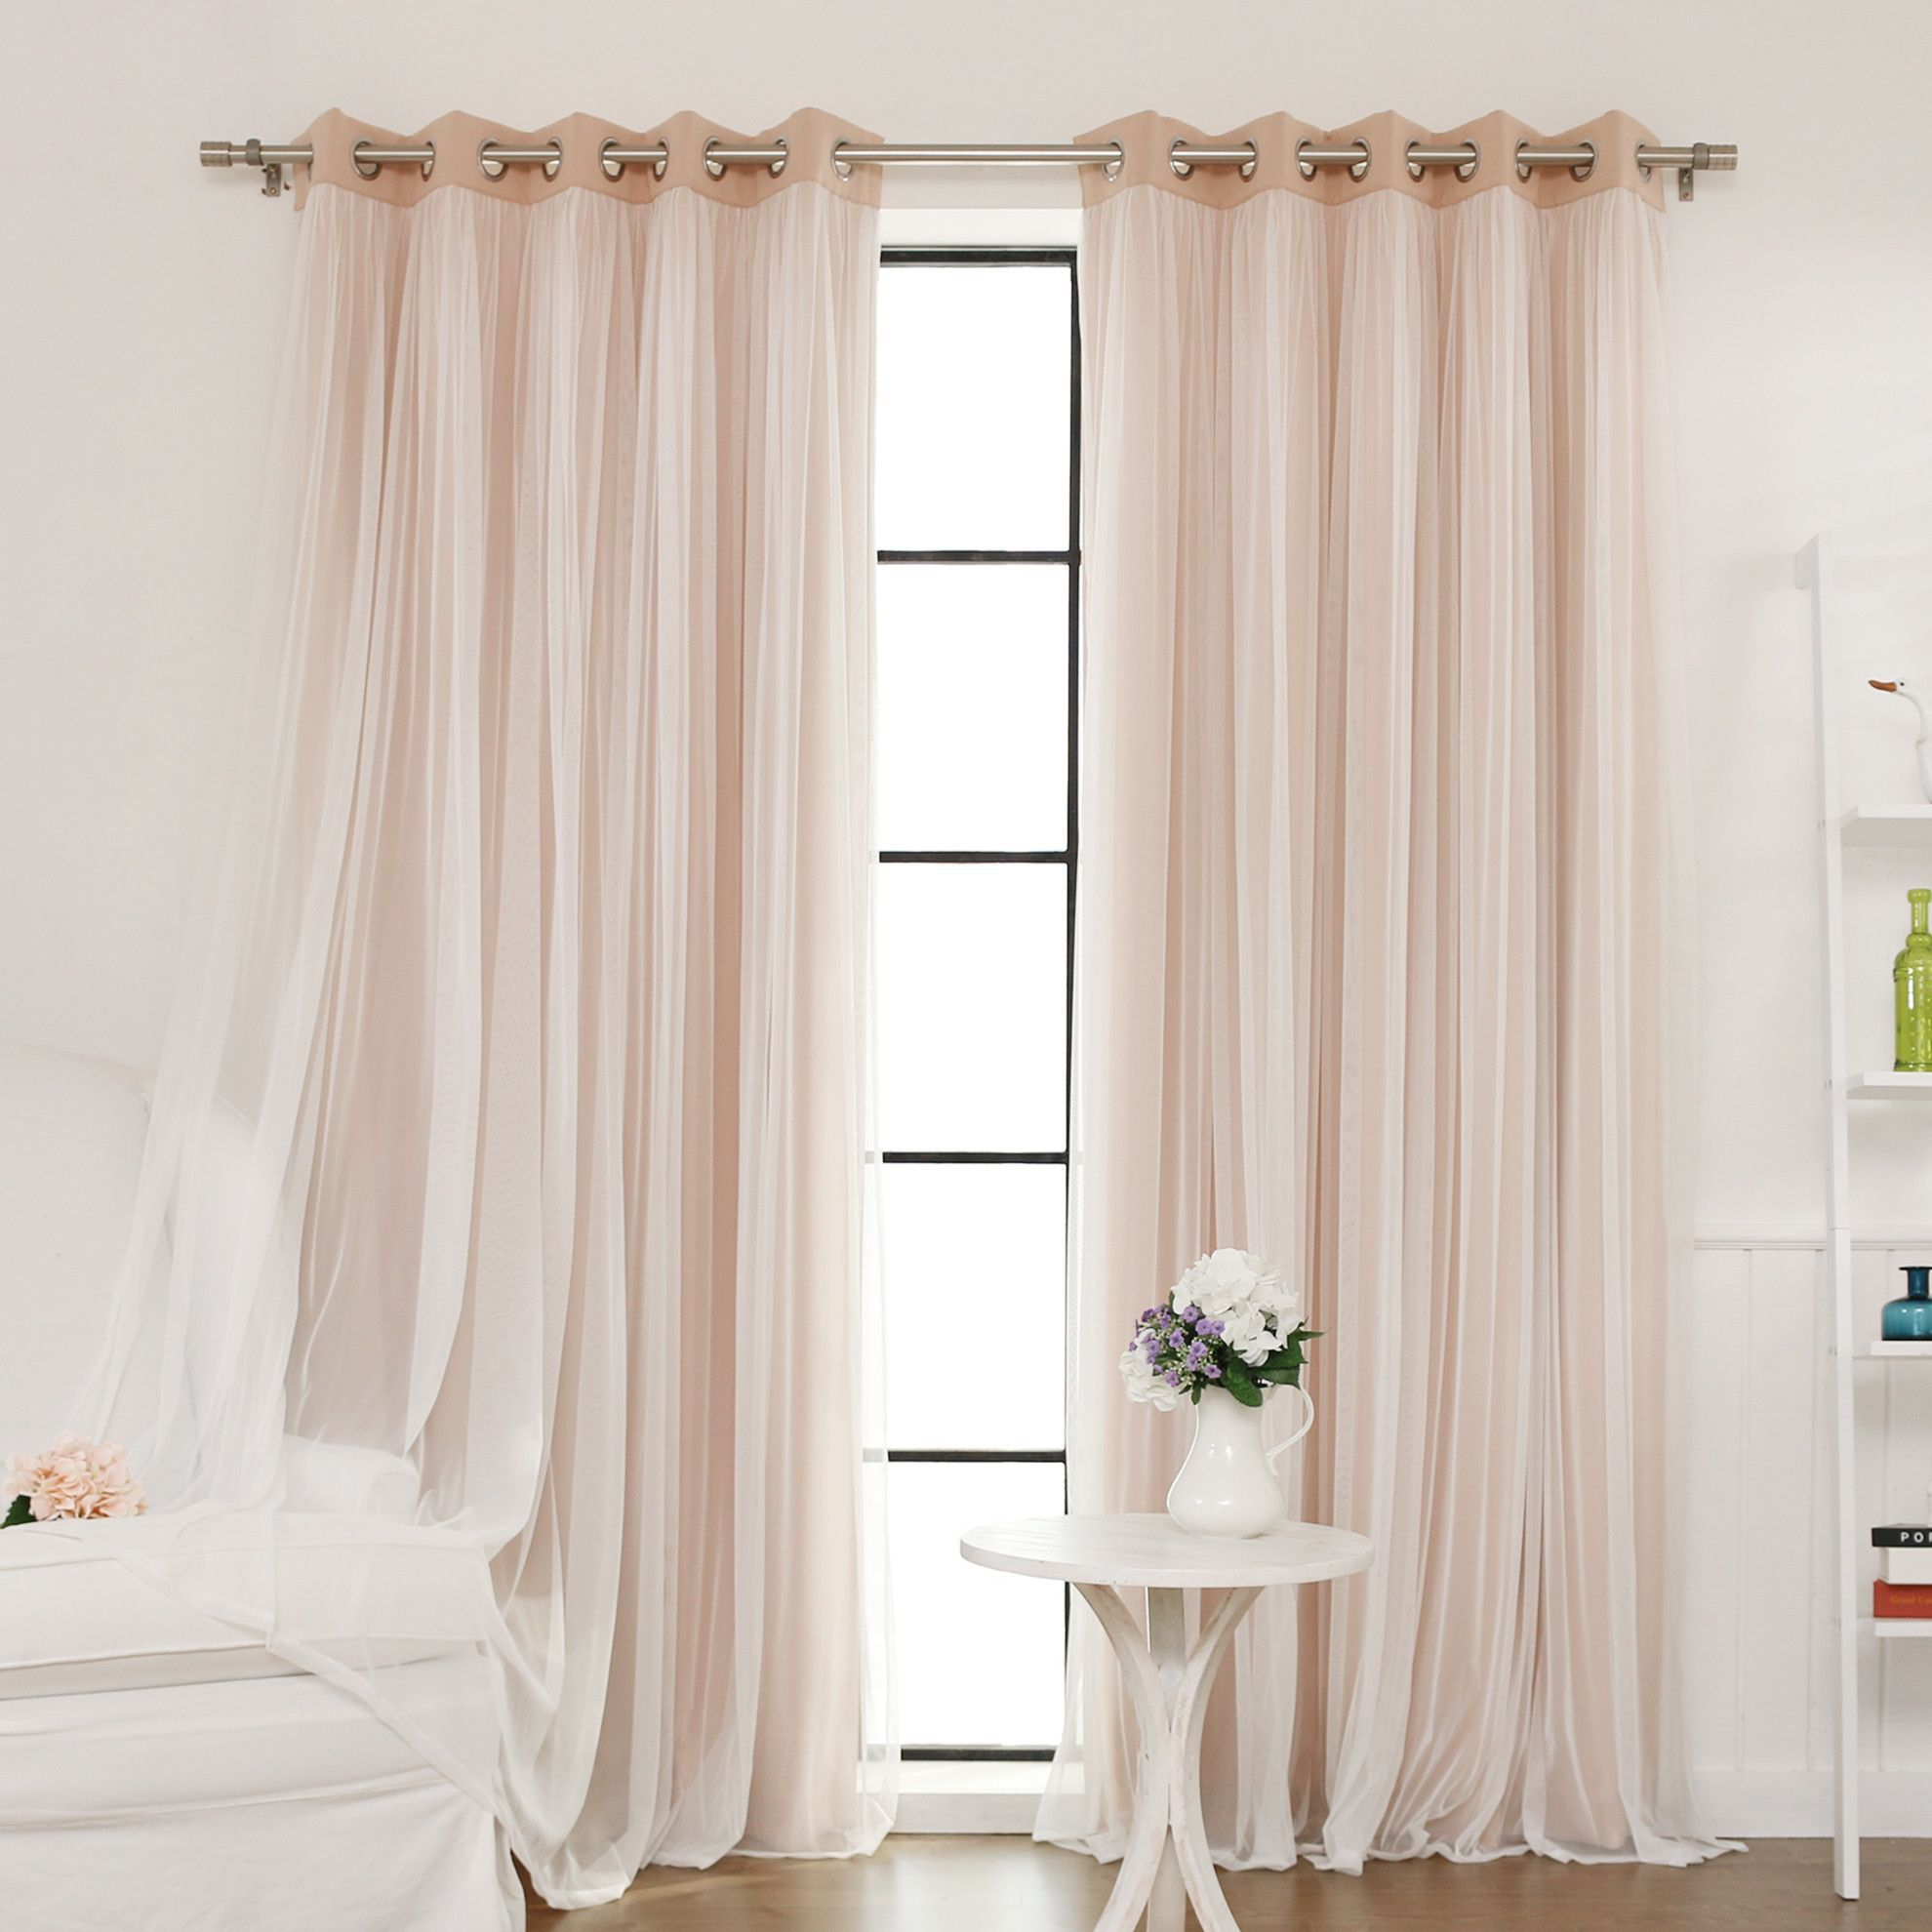 bronze transparent natural leaf linen the large royal simple taupe lengths pair pretty sage bird metallic seafoam dark draping blackout navy coral valances peach grommets copper privacy kitchen white rings bright bed curtains lined looking aqua crinkle coloured sheer